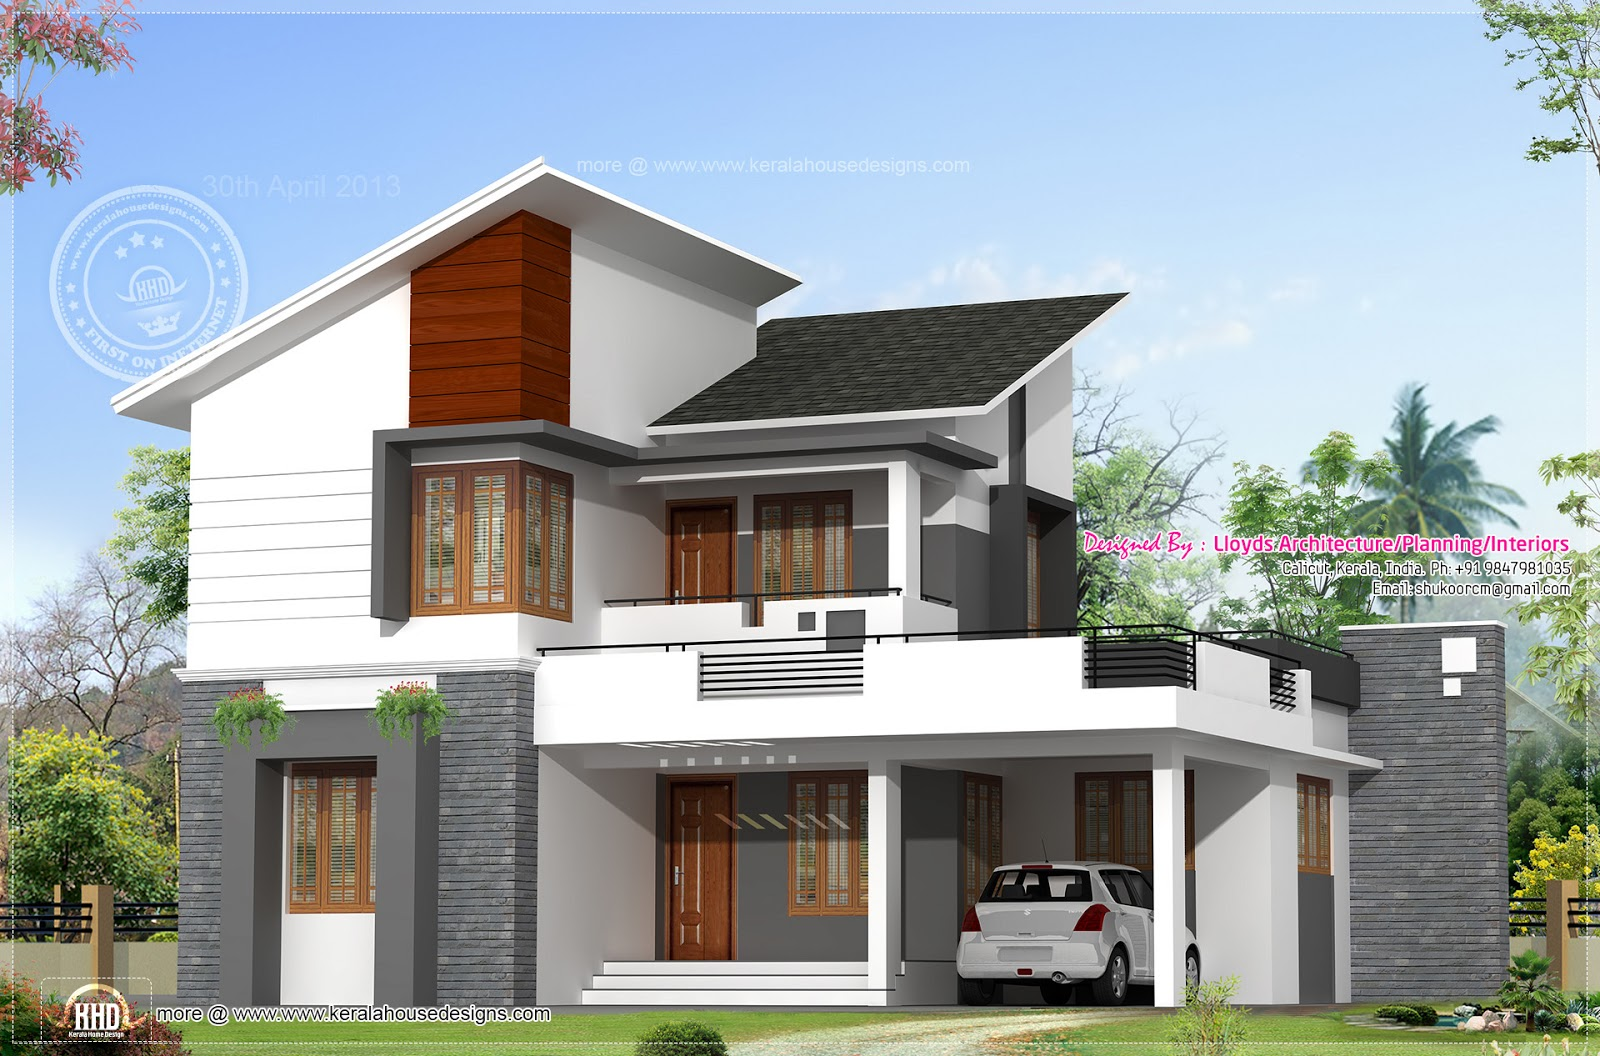 Modern tropical house design modern house designs and for Tropical home plans